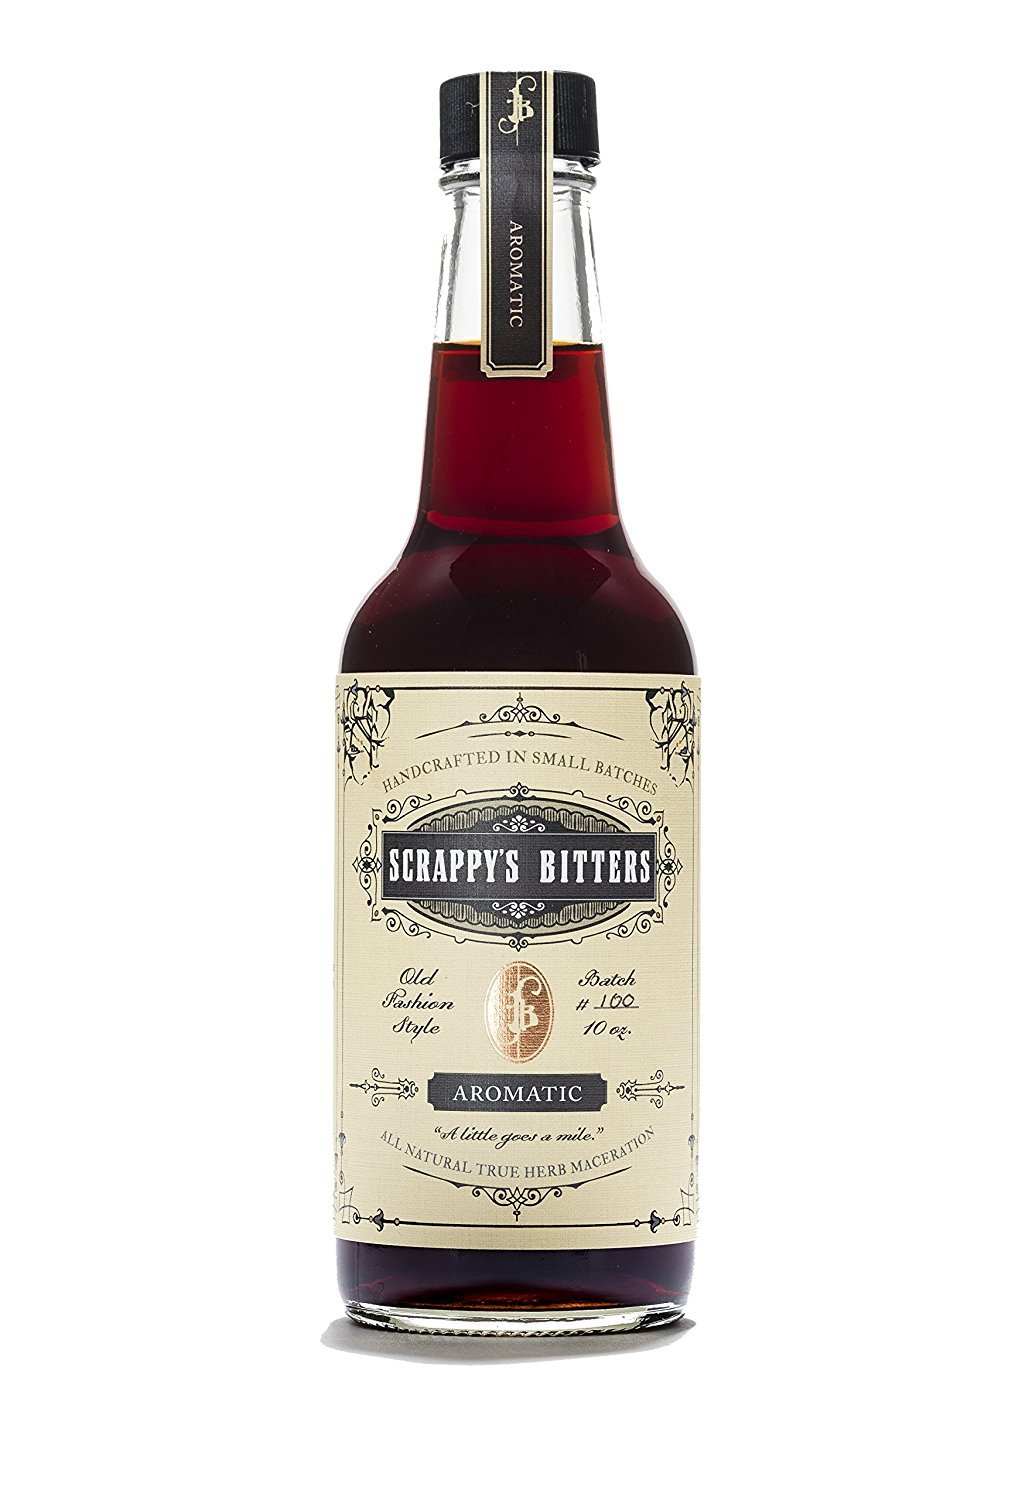 Scrappy's Bitters - Aromatic Bitters, 10 oz